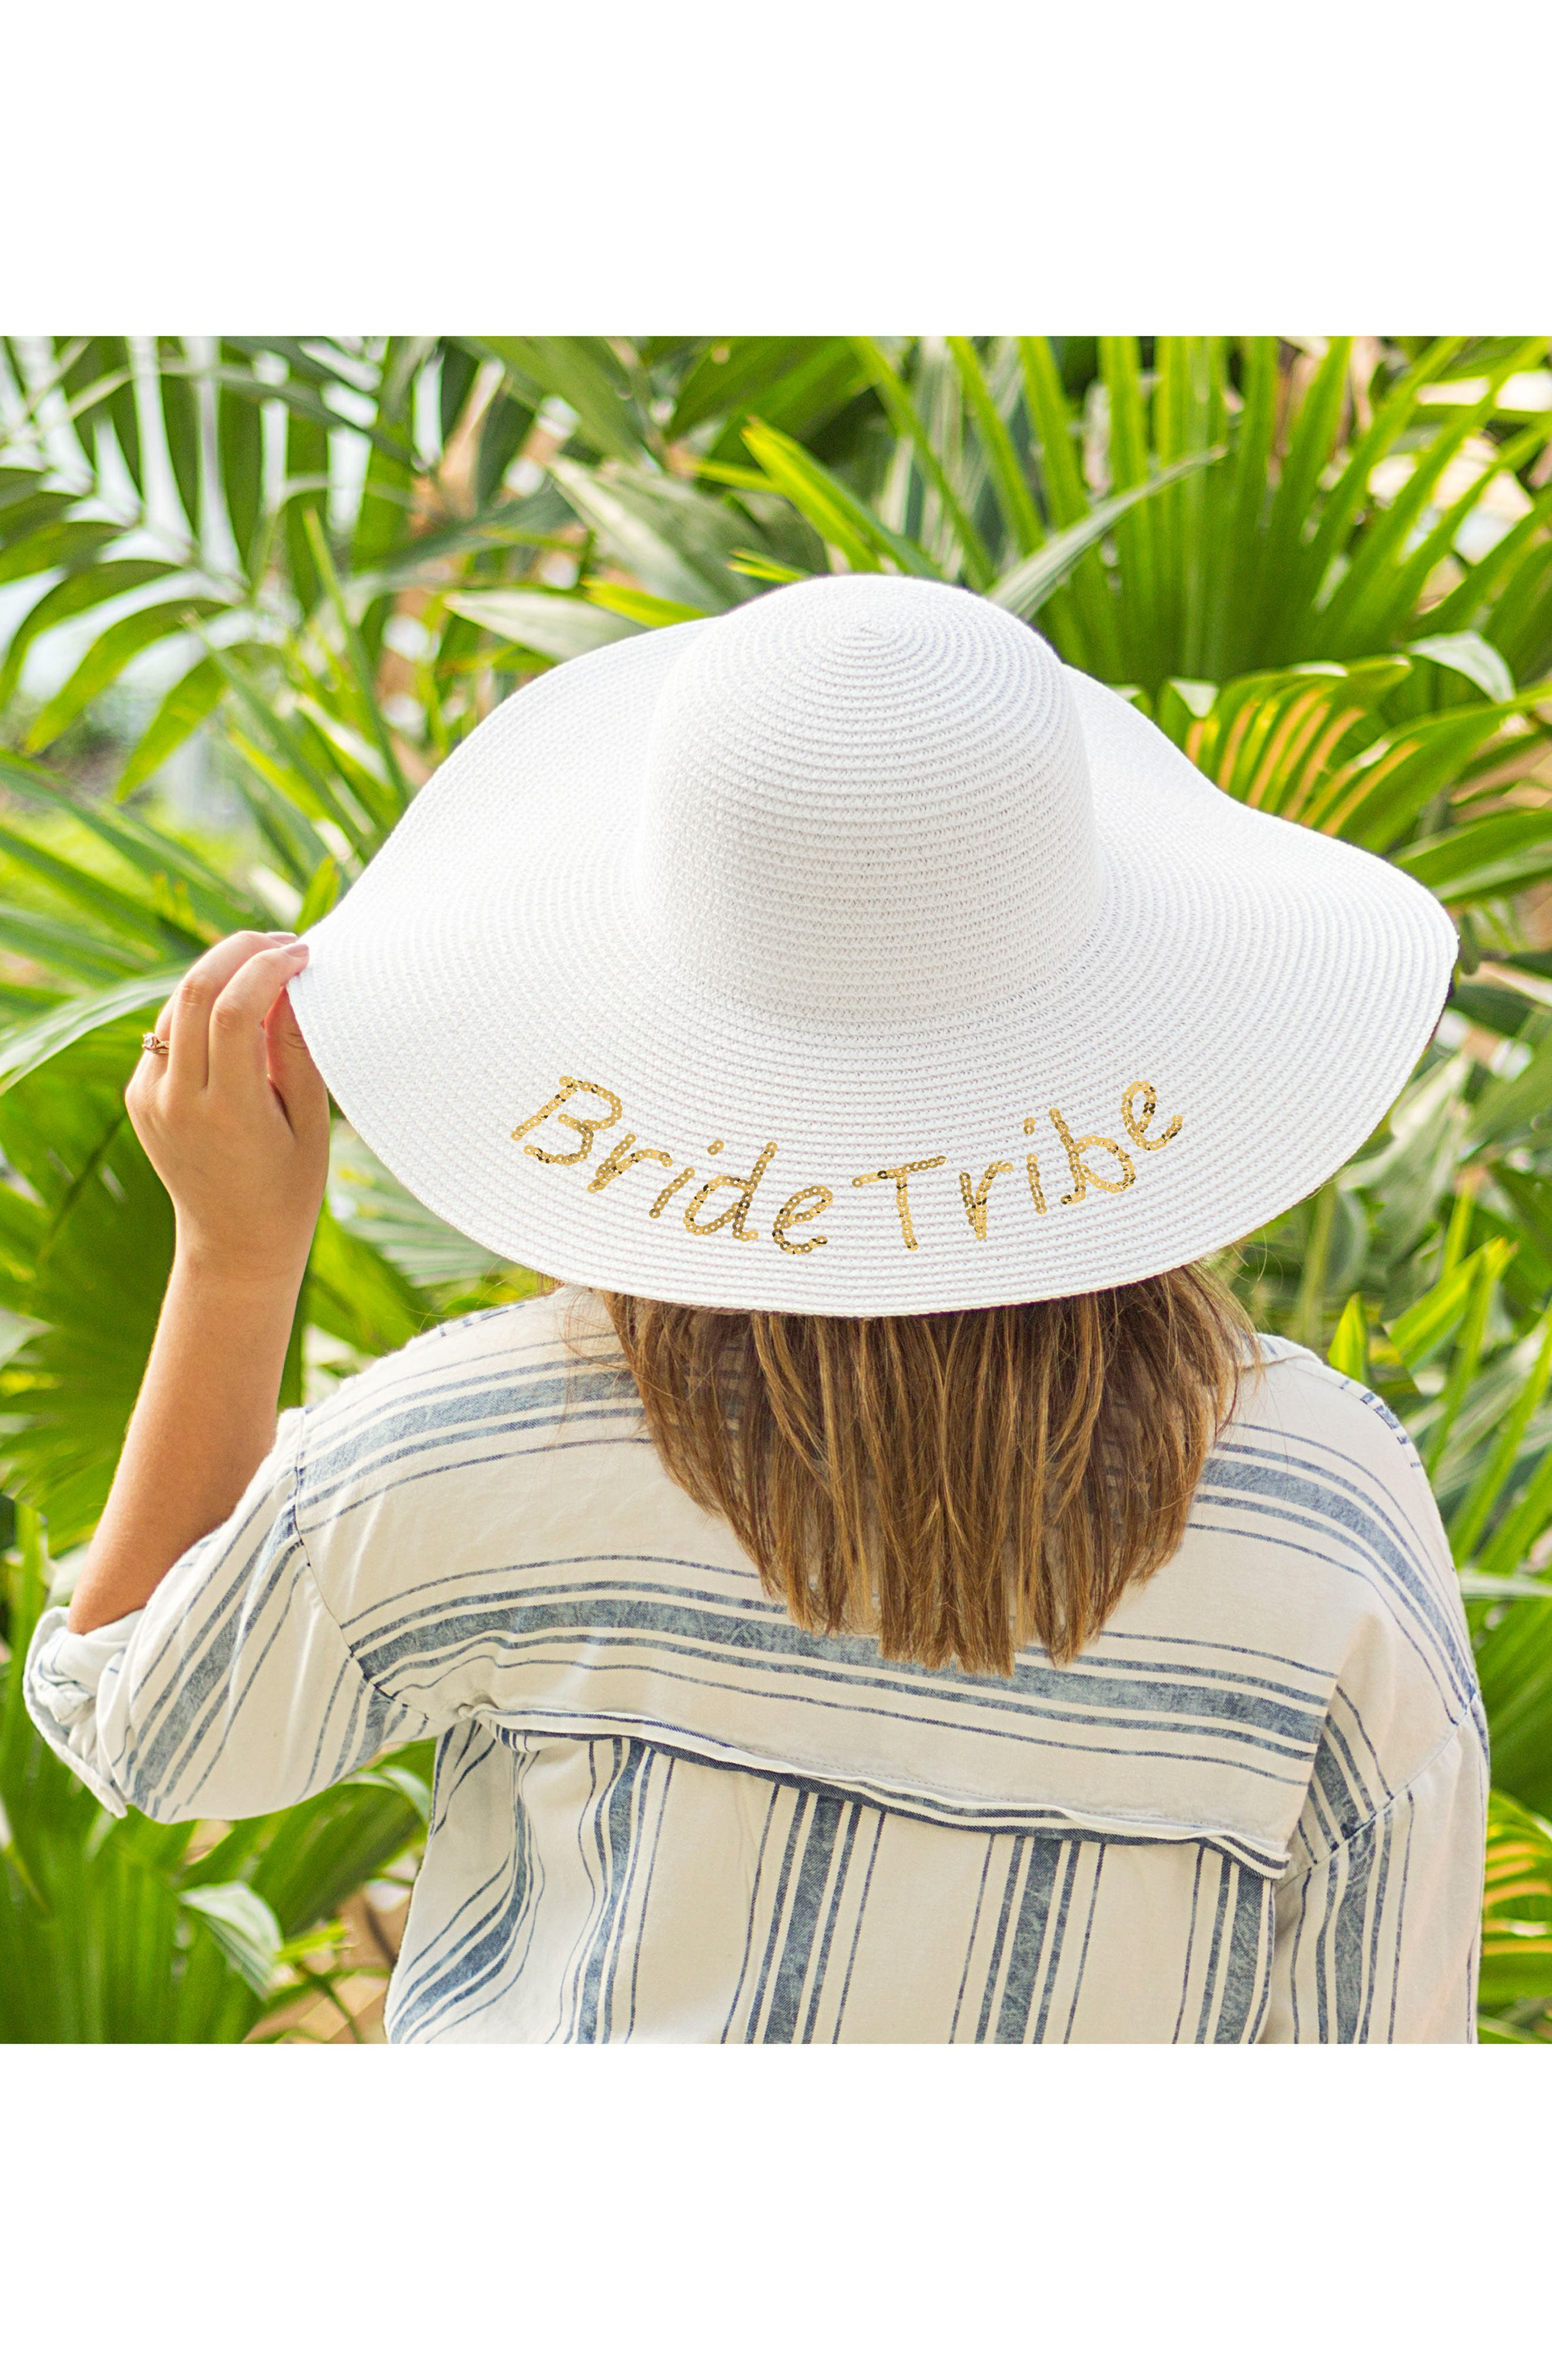 Sequin Bride Tribe Straw Hat,                             Alternate thumbnail 3, color,                             Gold